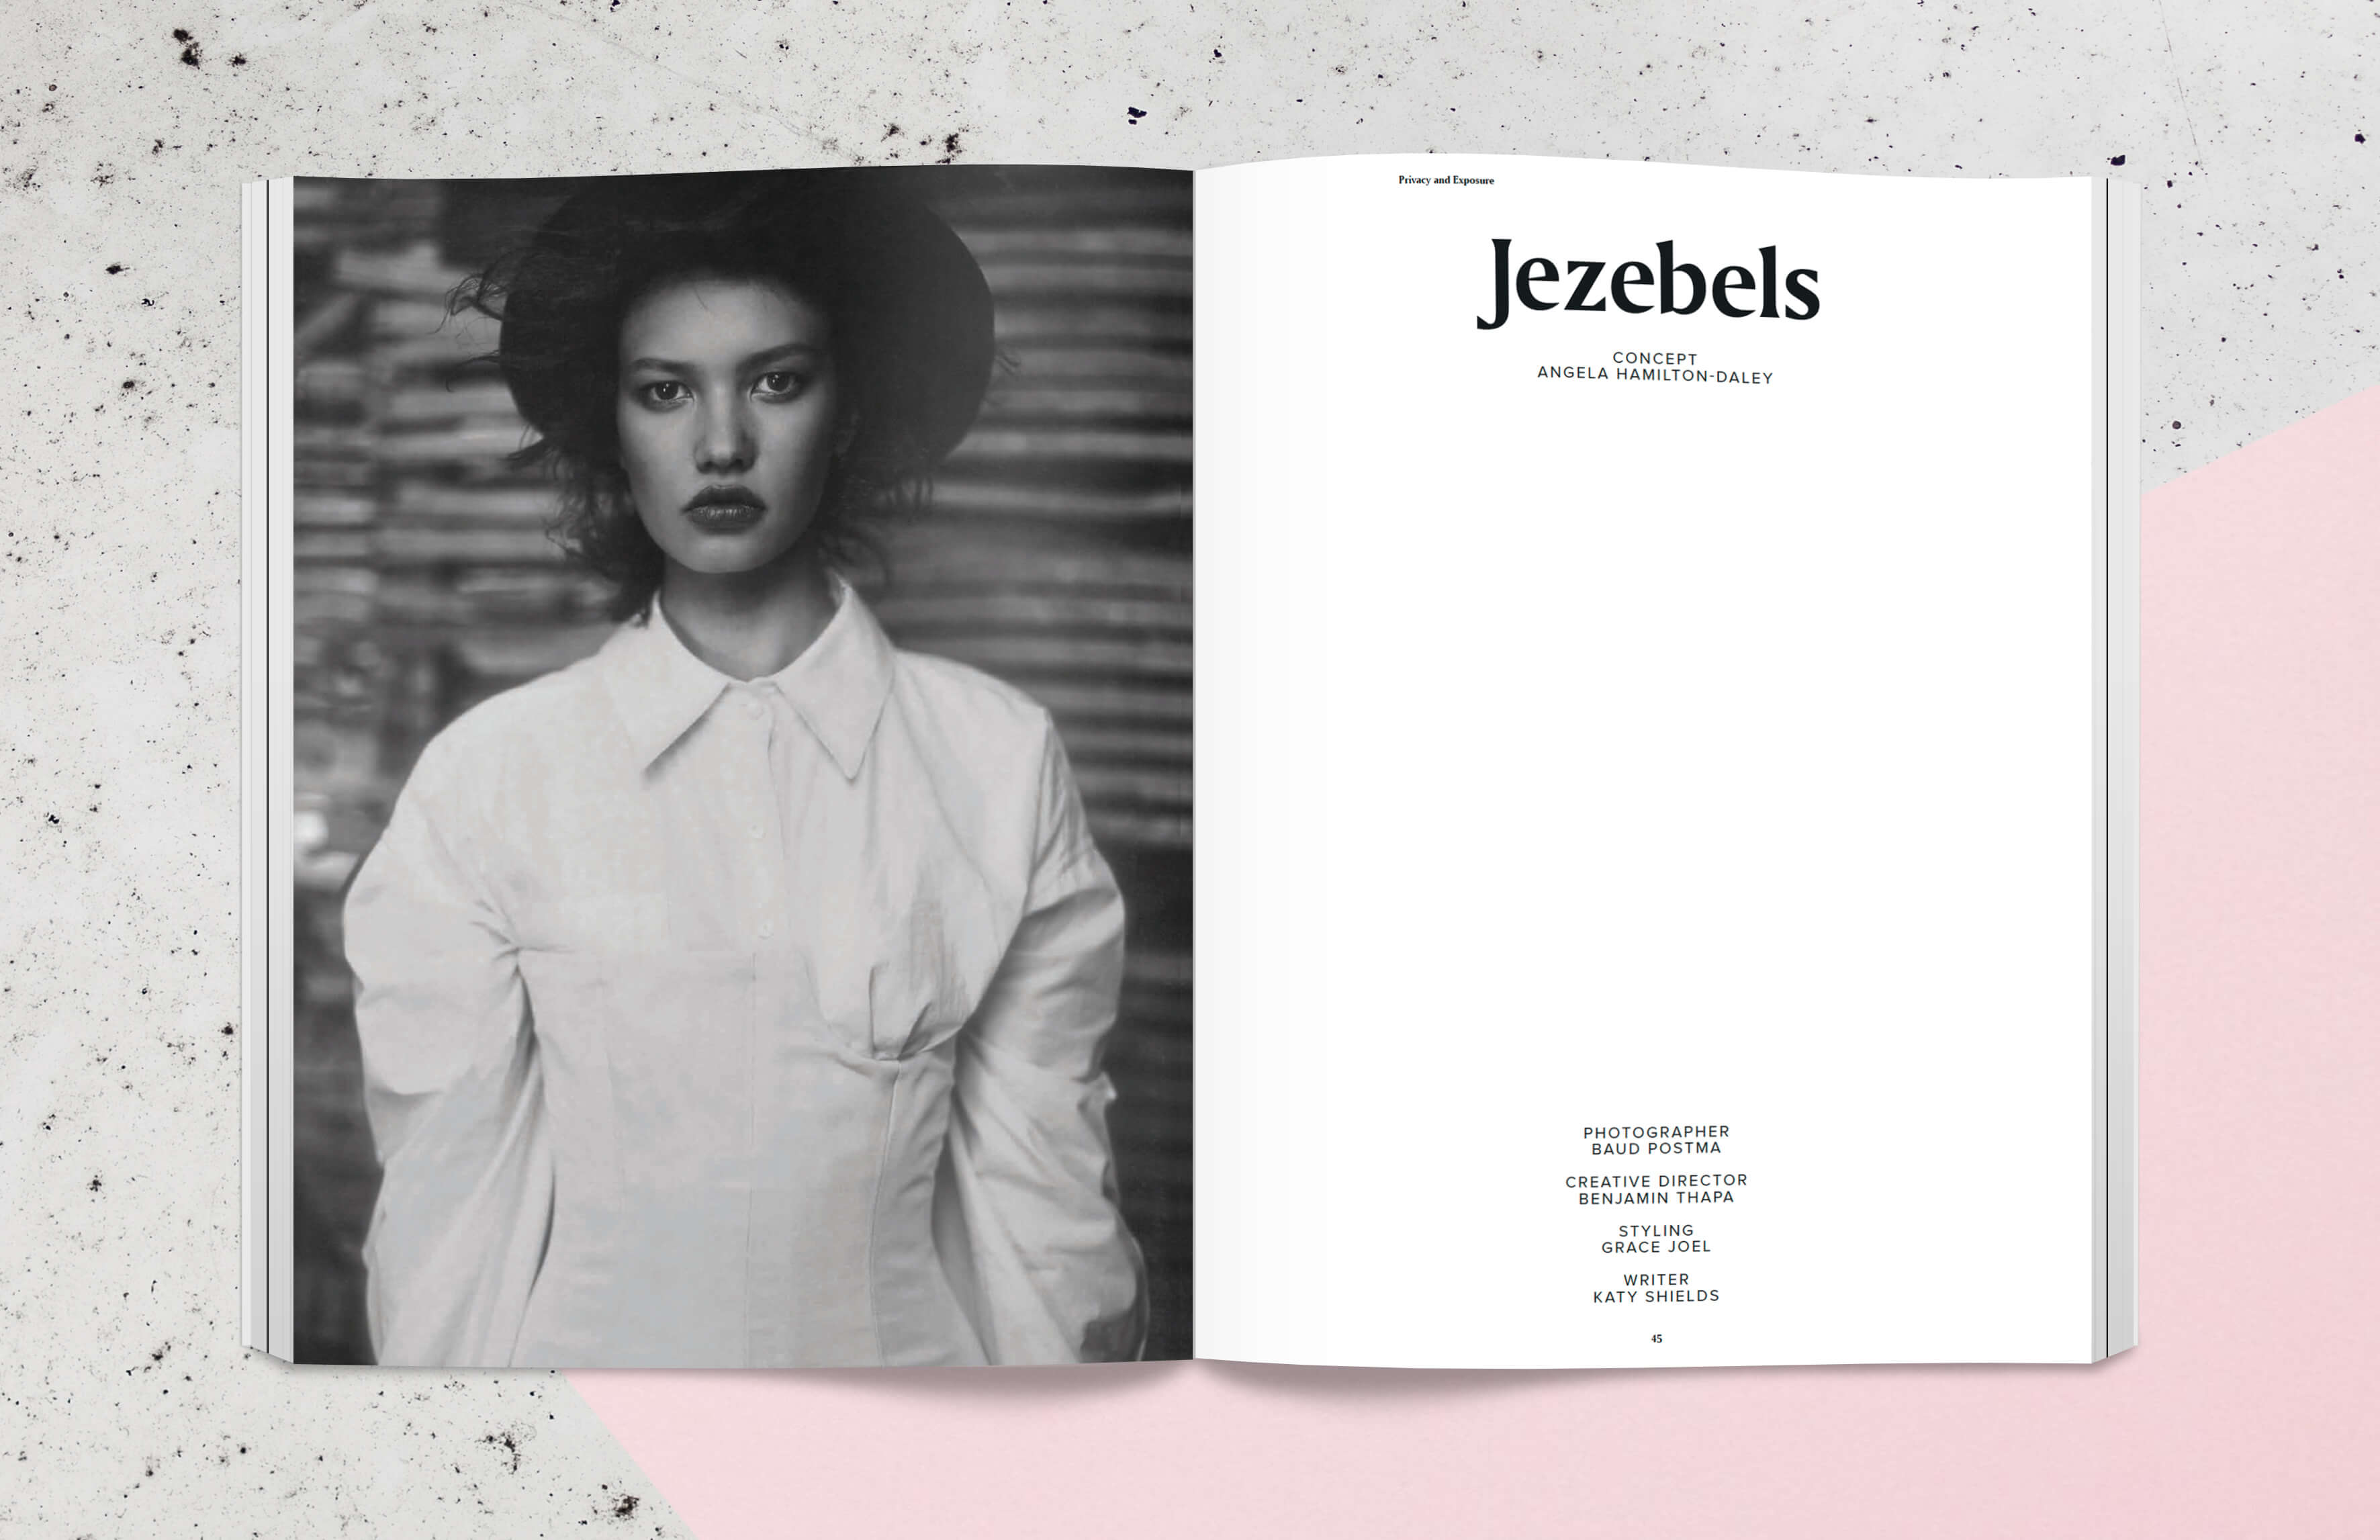 Magazine spread with fashion editorial, portrait in black and white of woman